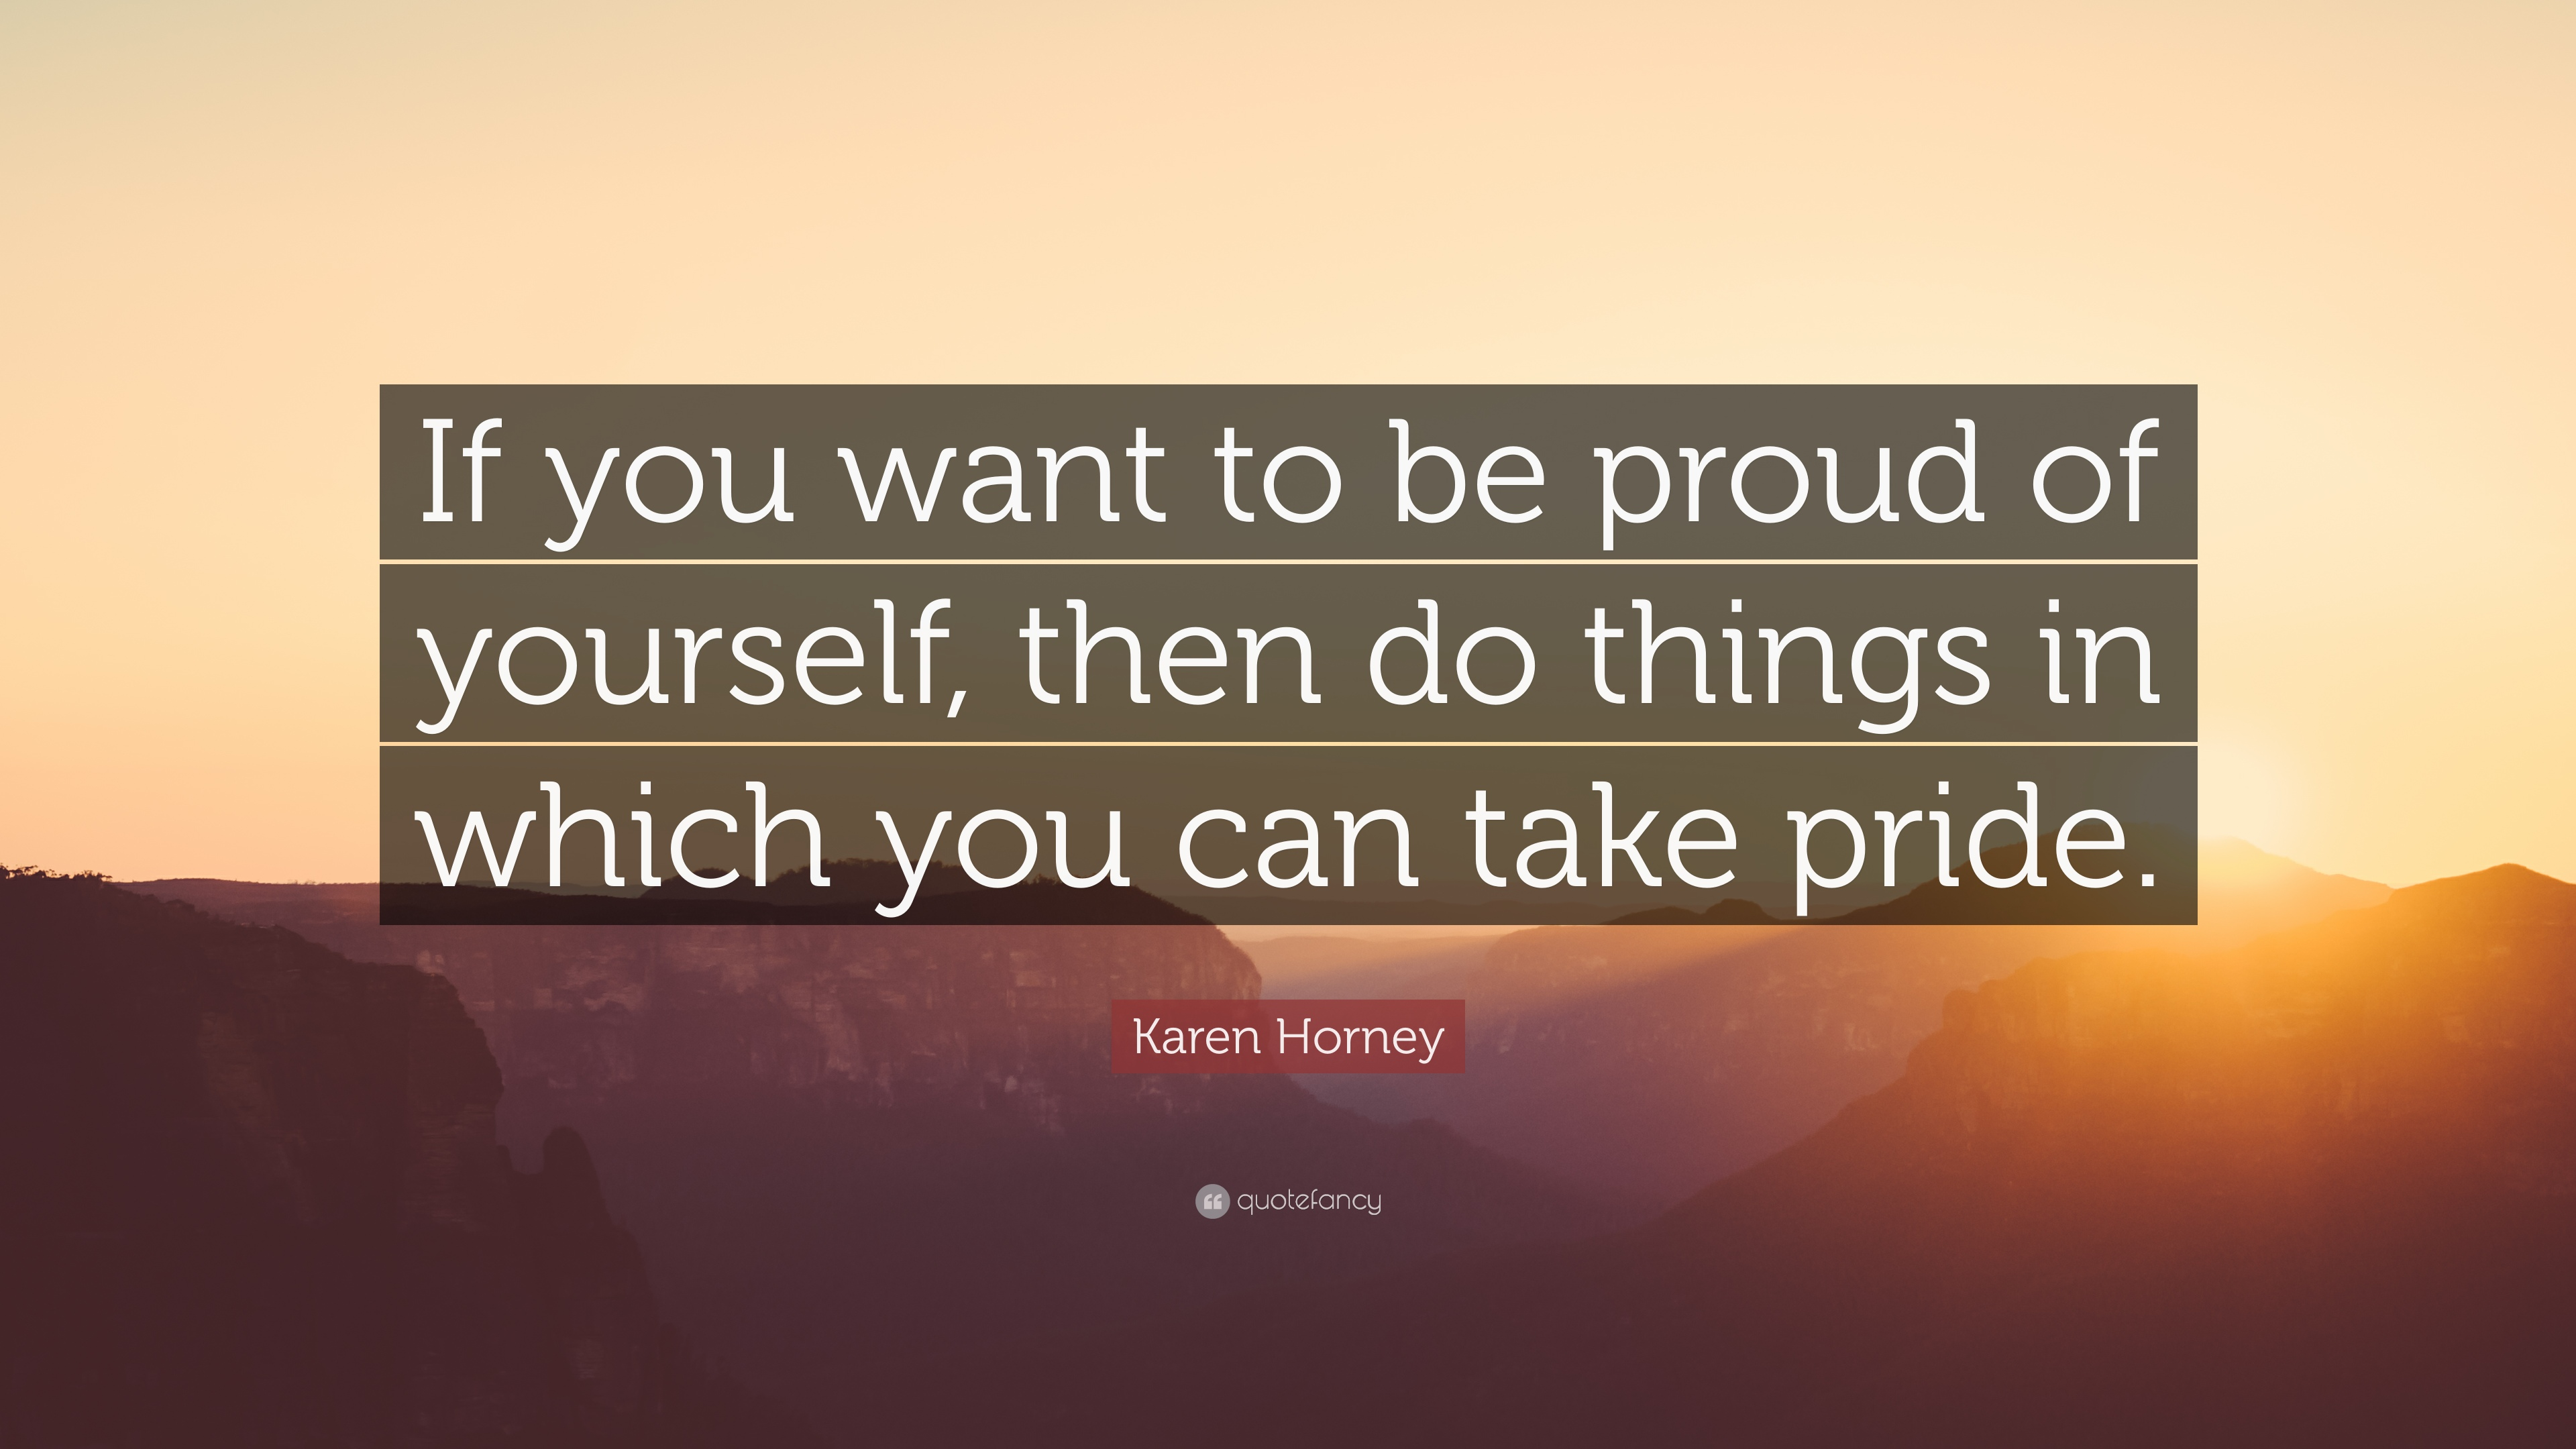 Karen Horney Quote If You Want To Be Proud Of Yourself Then Do